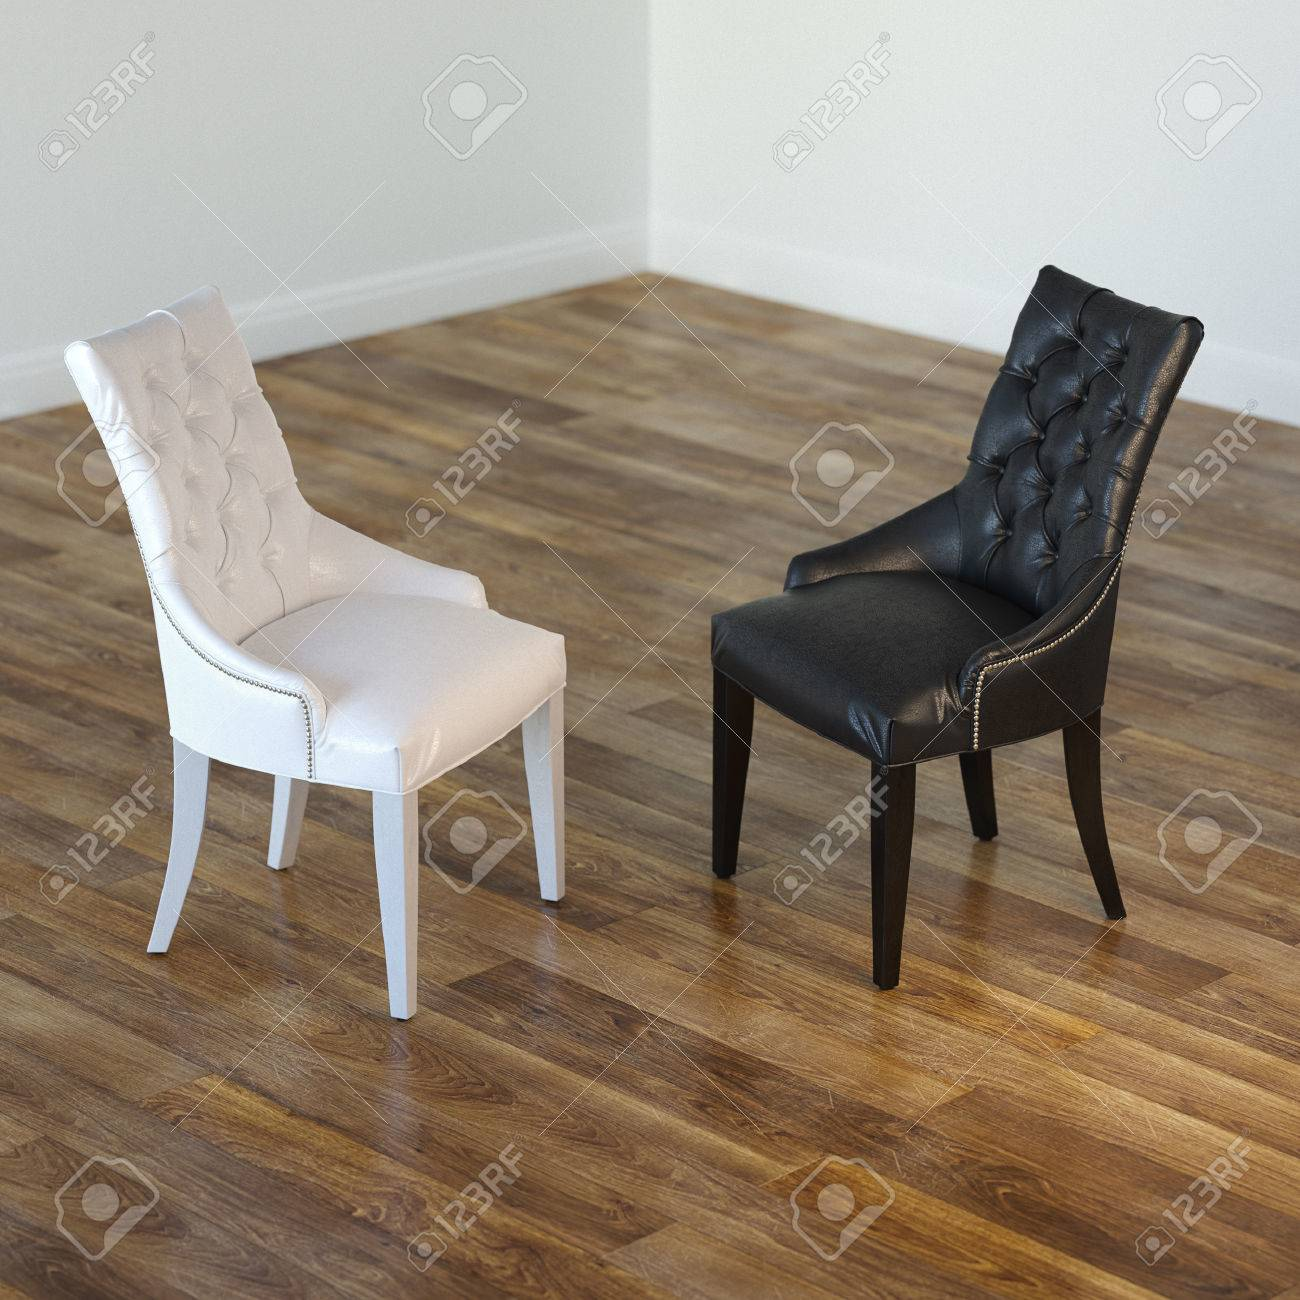 Minimalist Interior Room With Black And White Chairs Stock Photo - 23041793